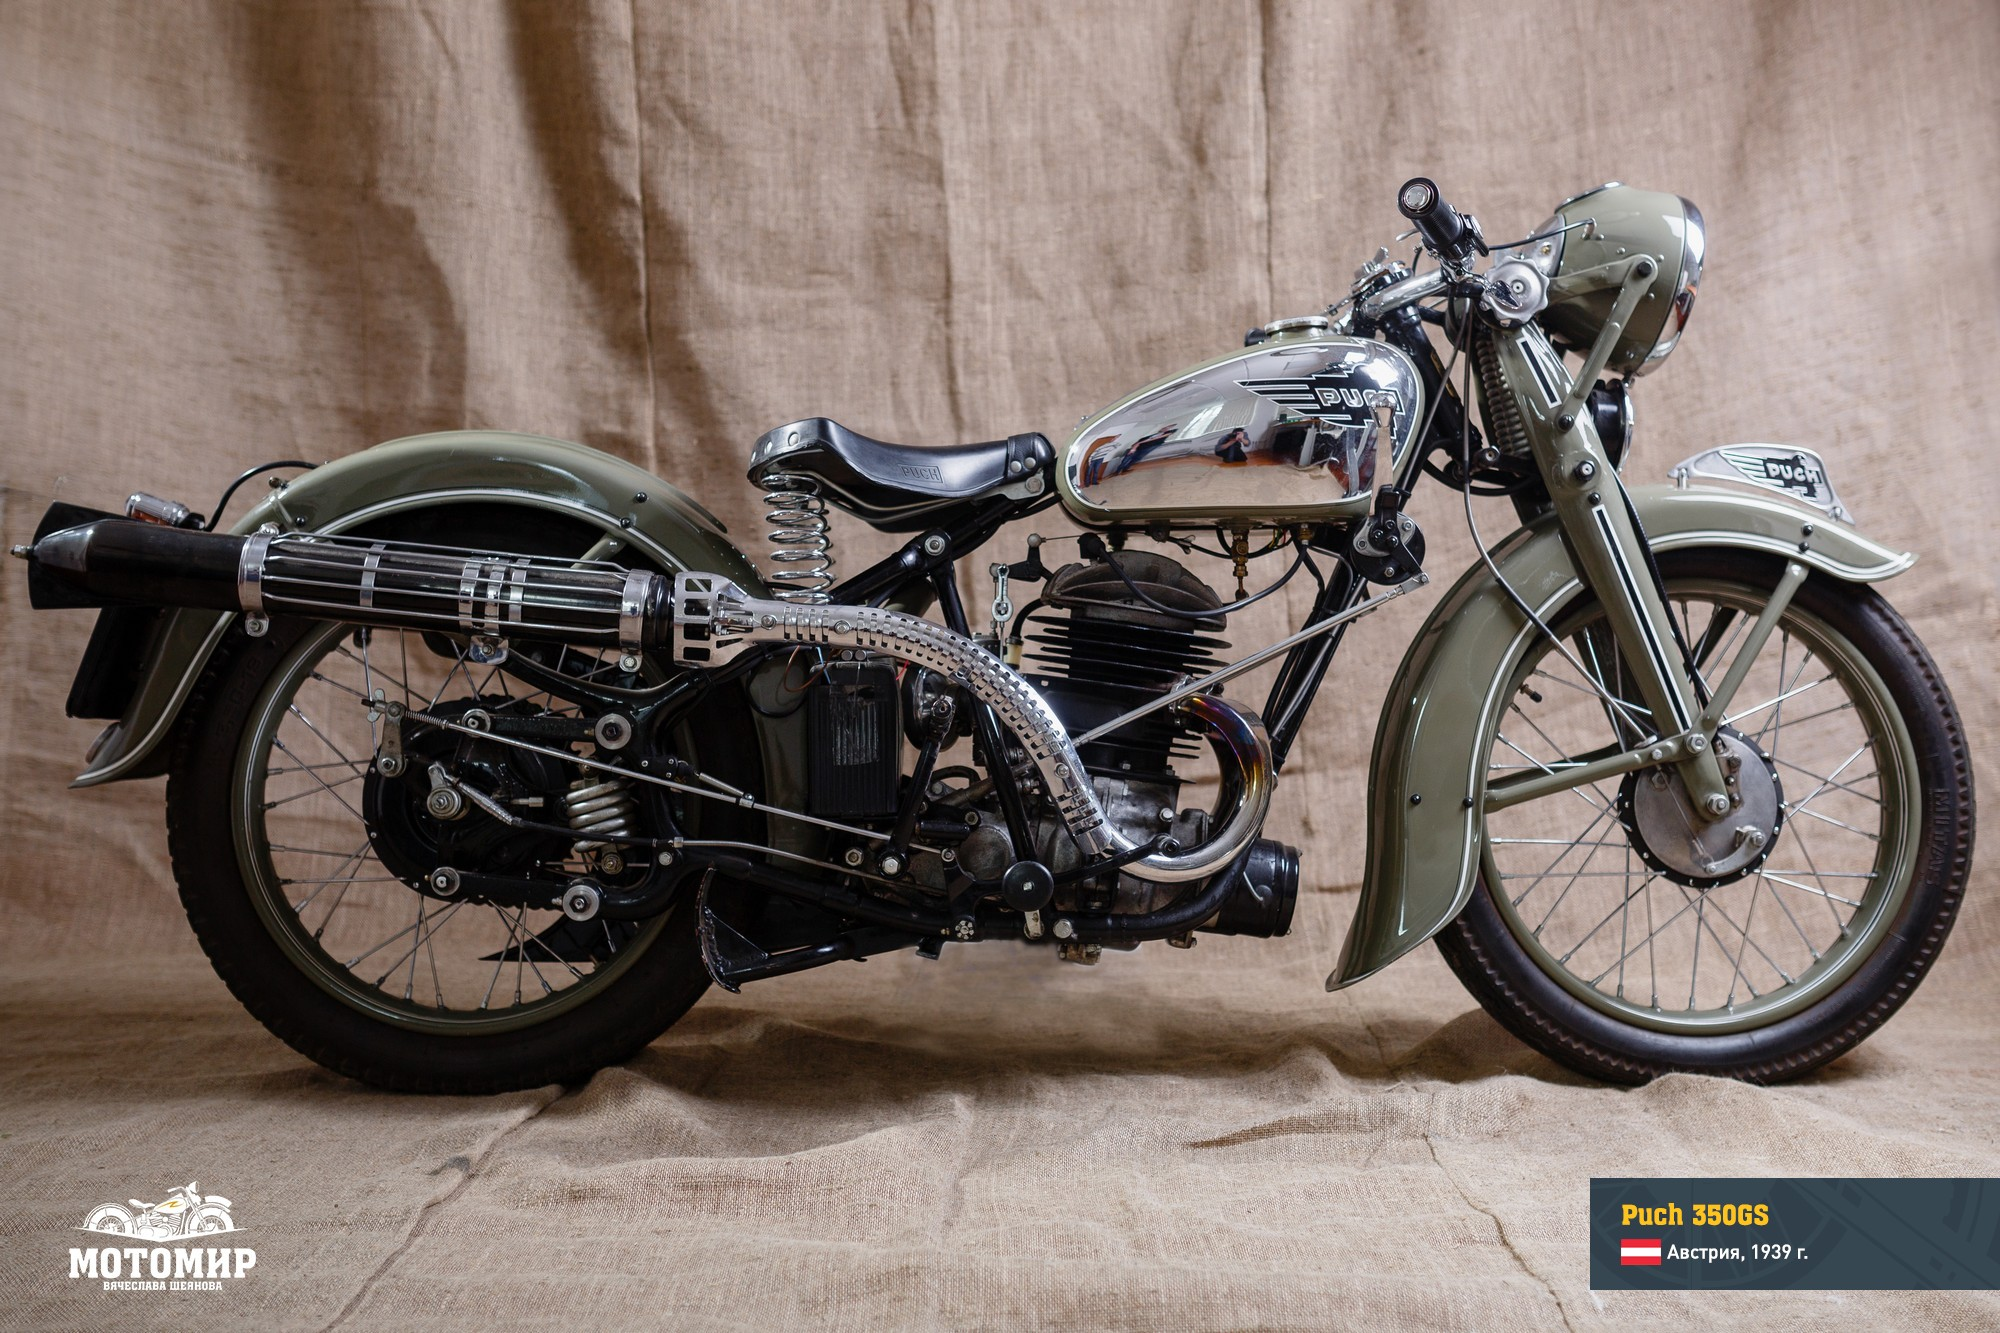 puch-350gs-201601-web-01